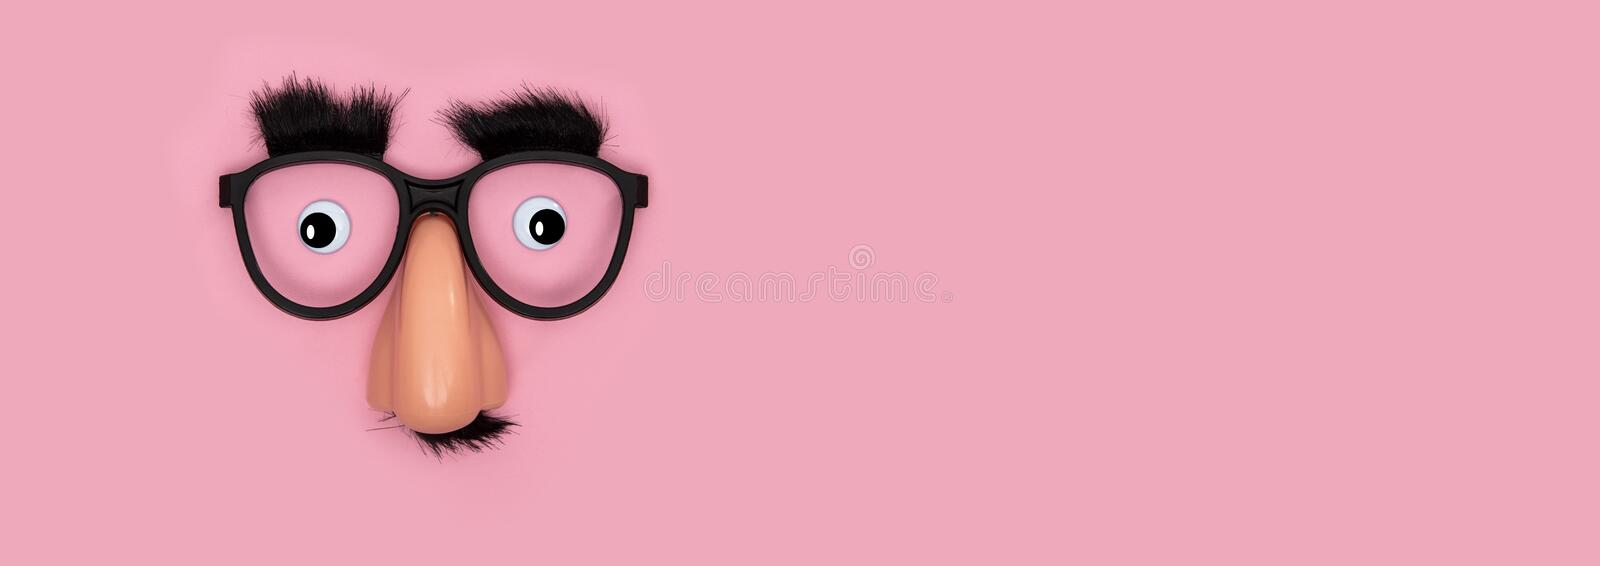 Funny Mask with Nose Panorama royalty free stock photo